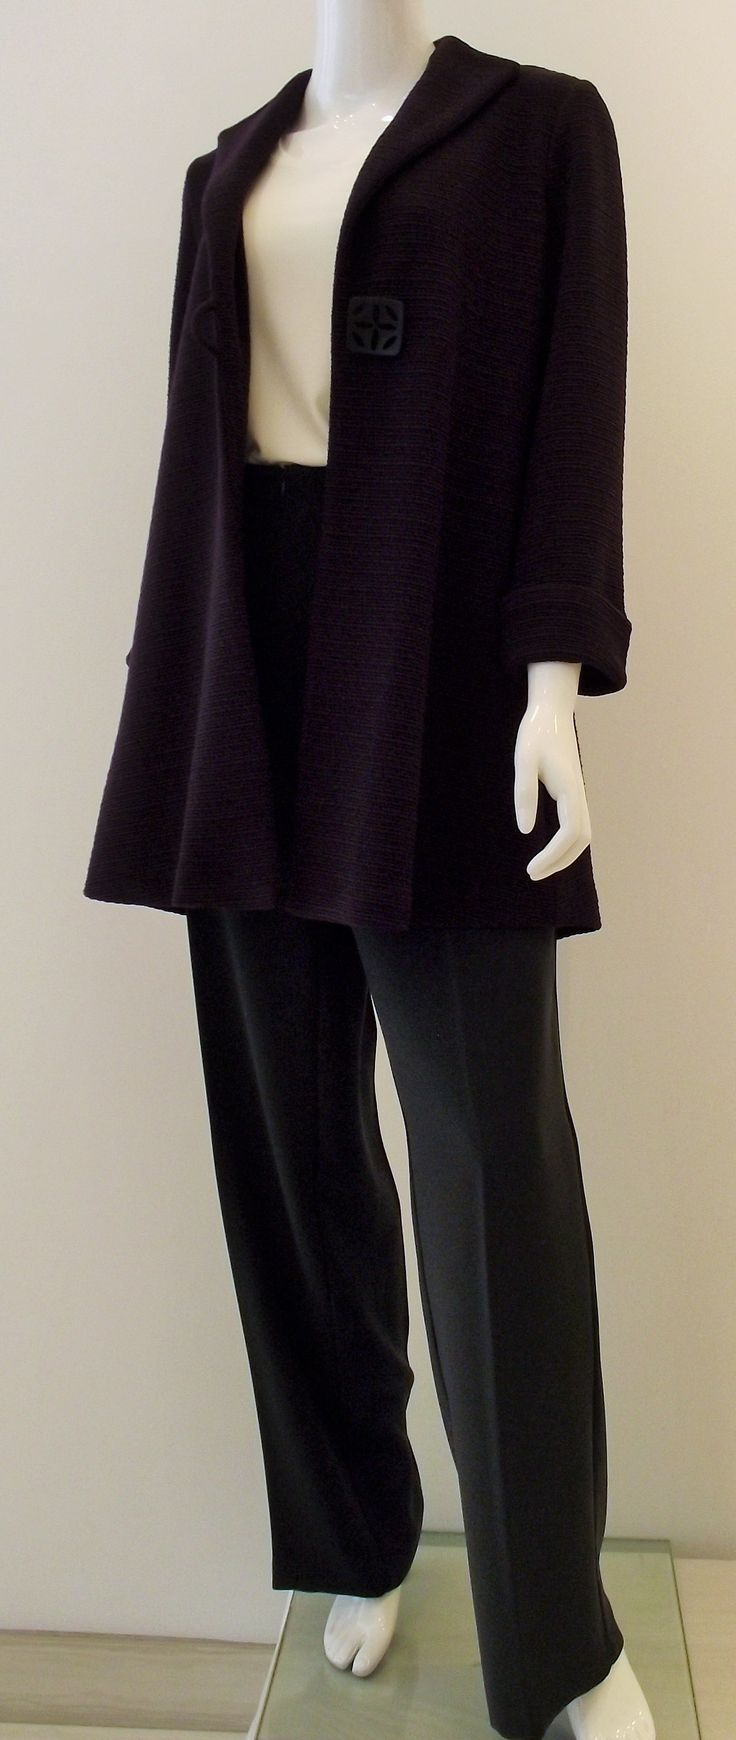 Beautiful purple jacket by Ribkoff also sold in black